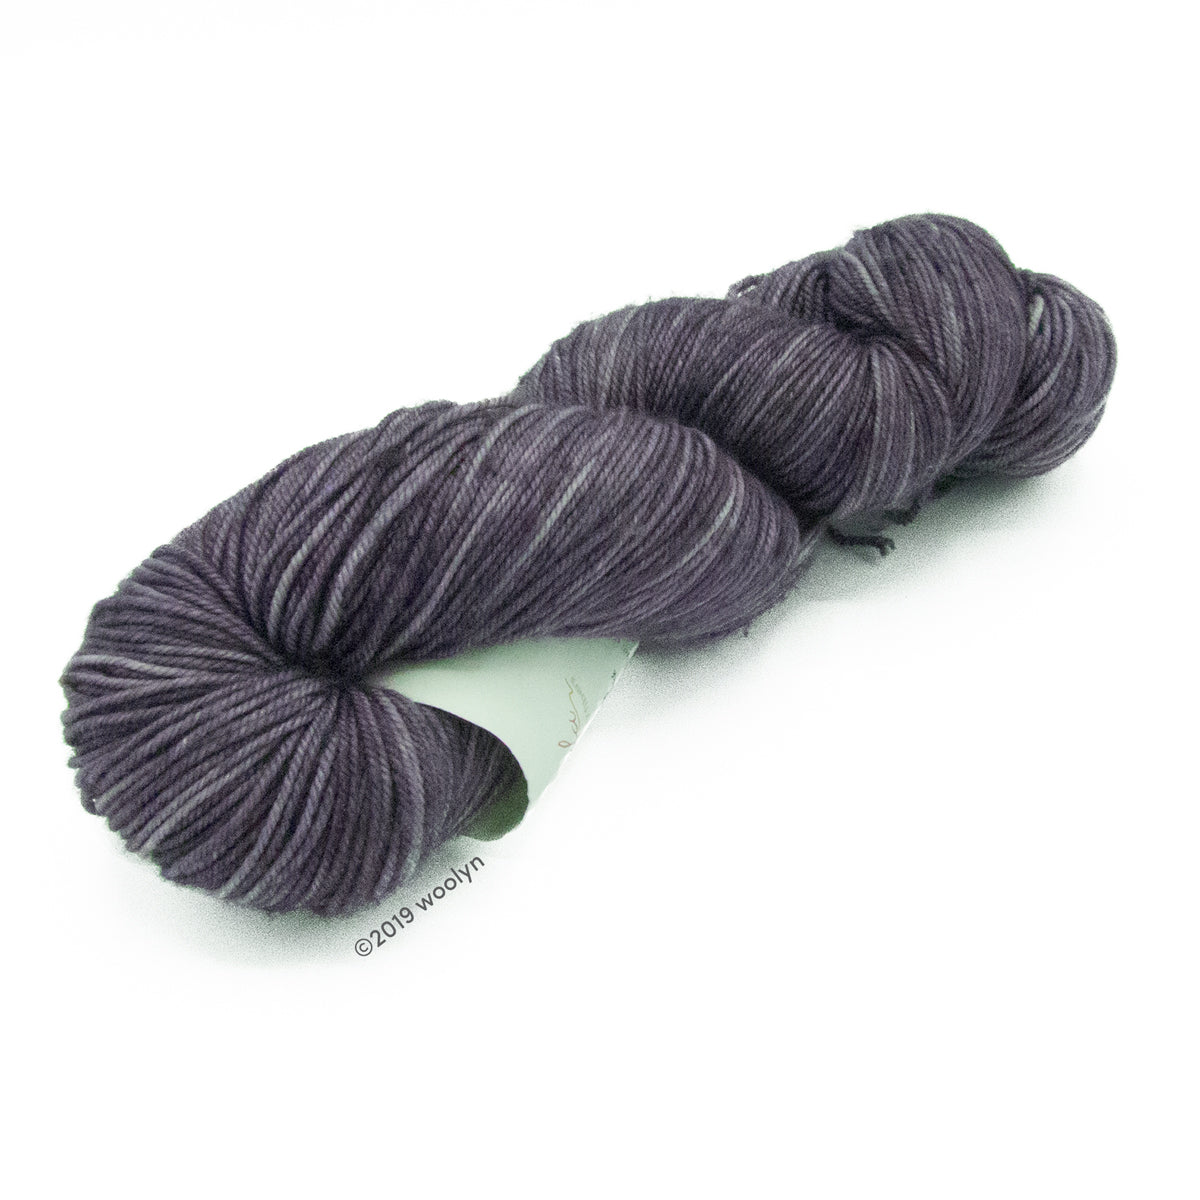 Hand dyed  fingering weight yarn in deep warm grey  tonal shades twisted into a skein.